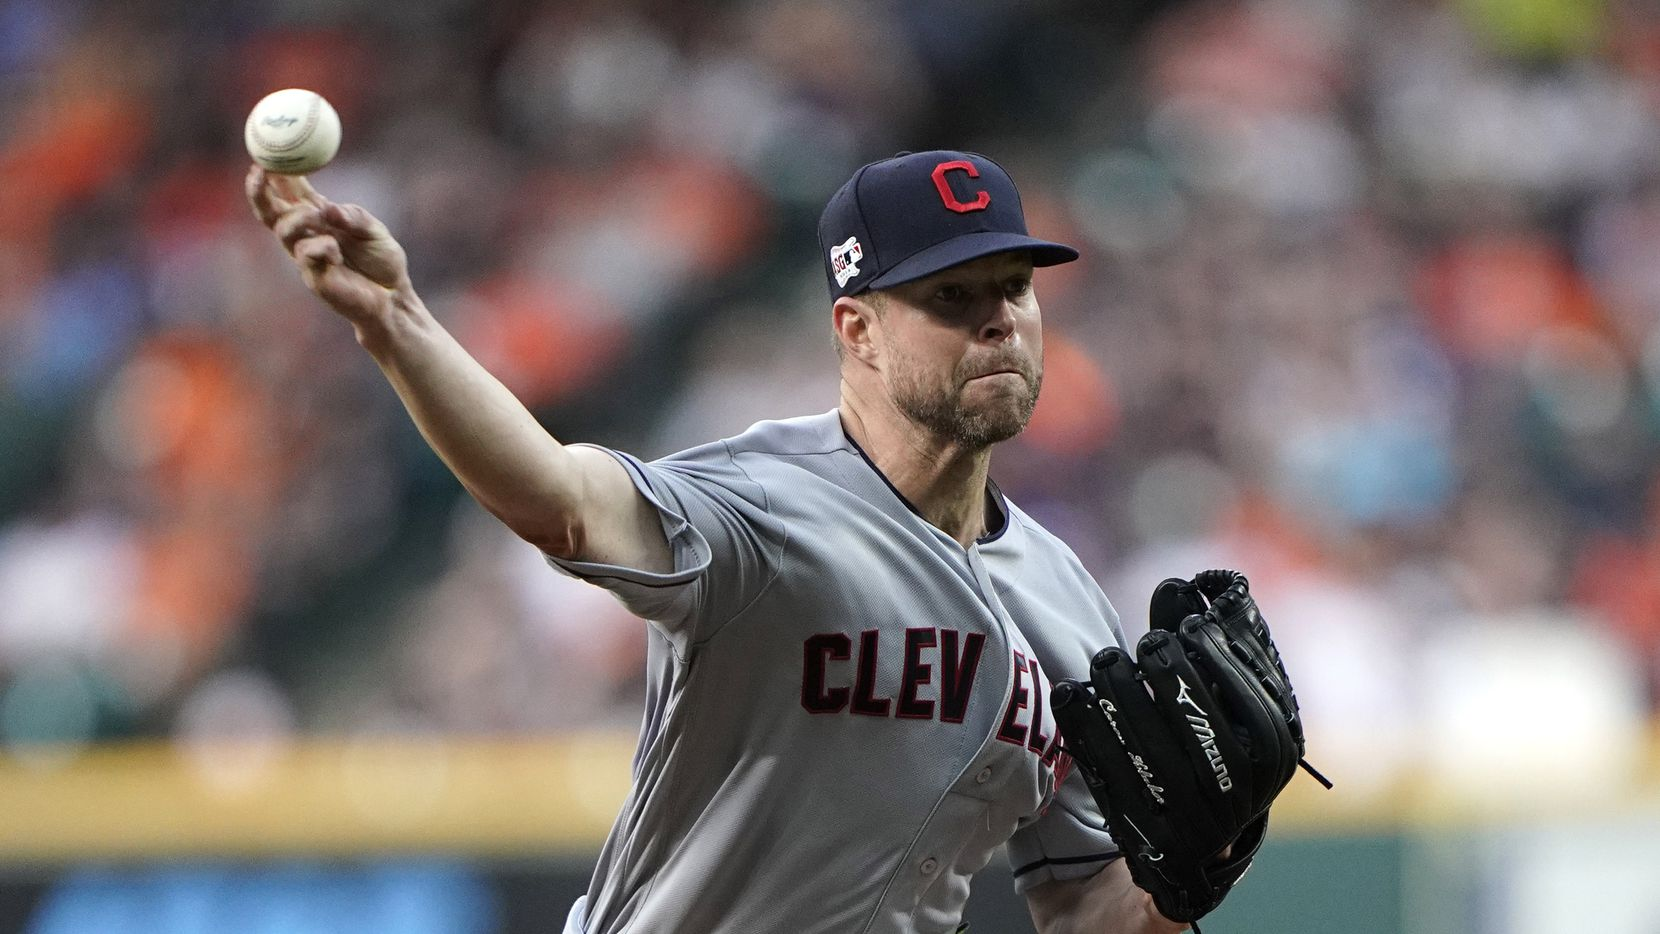 FILE - In this April 26, 2019, file photo, Cleveland Indians starting pitcher Corey Kluber throws against the Houston Astros during the first inning of a baseball game in Houston. (AP Photo/David J. Phillip, File)